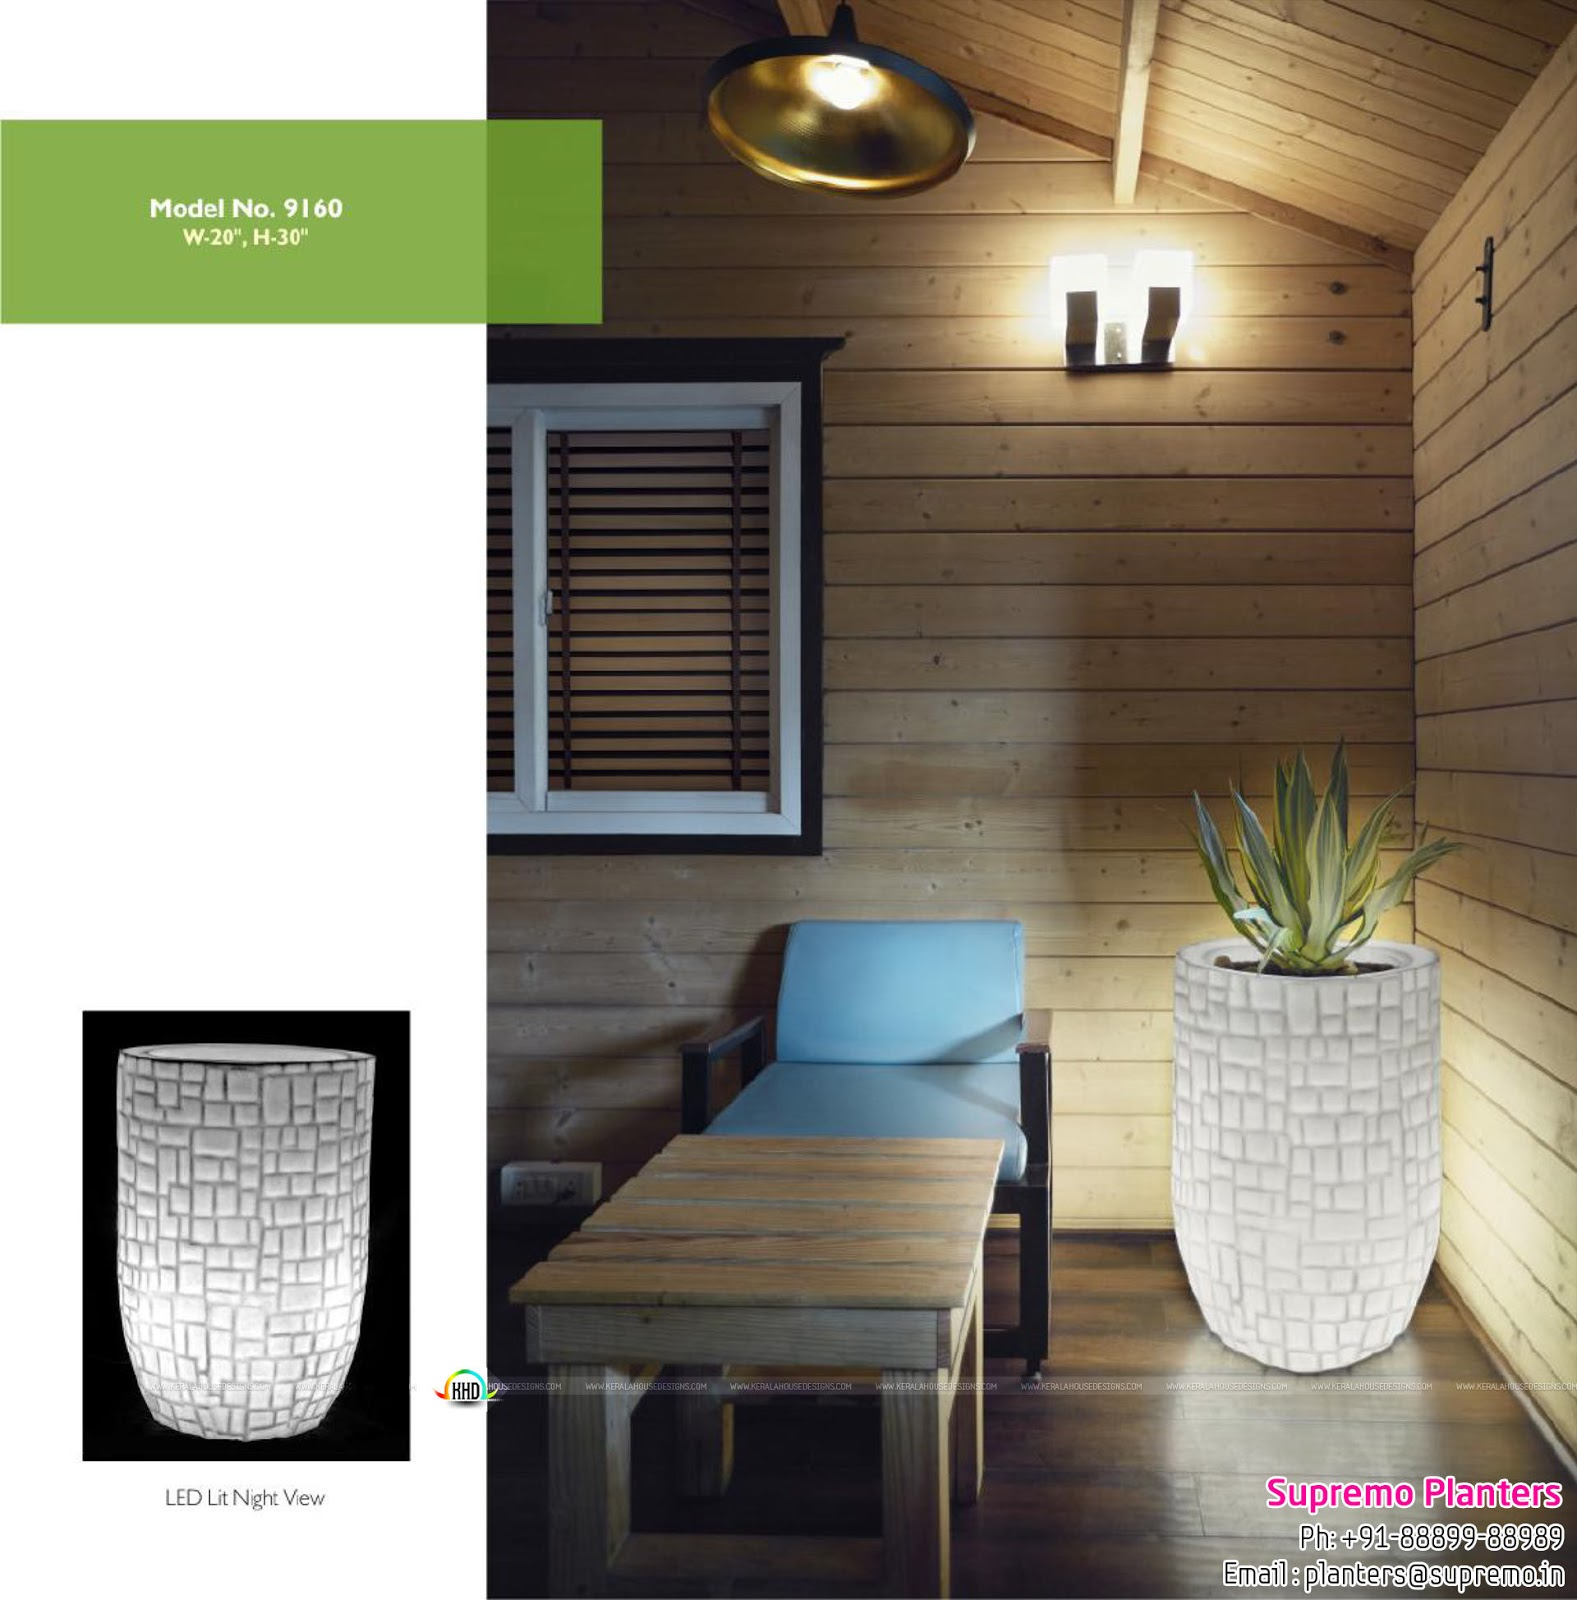 Lifestyle Products That Offers Planters And LED Light